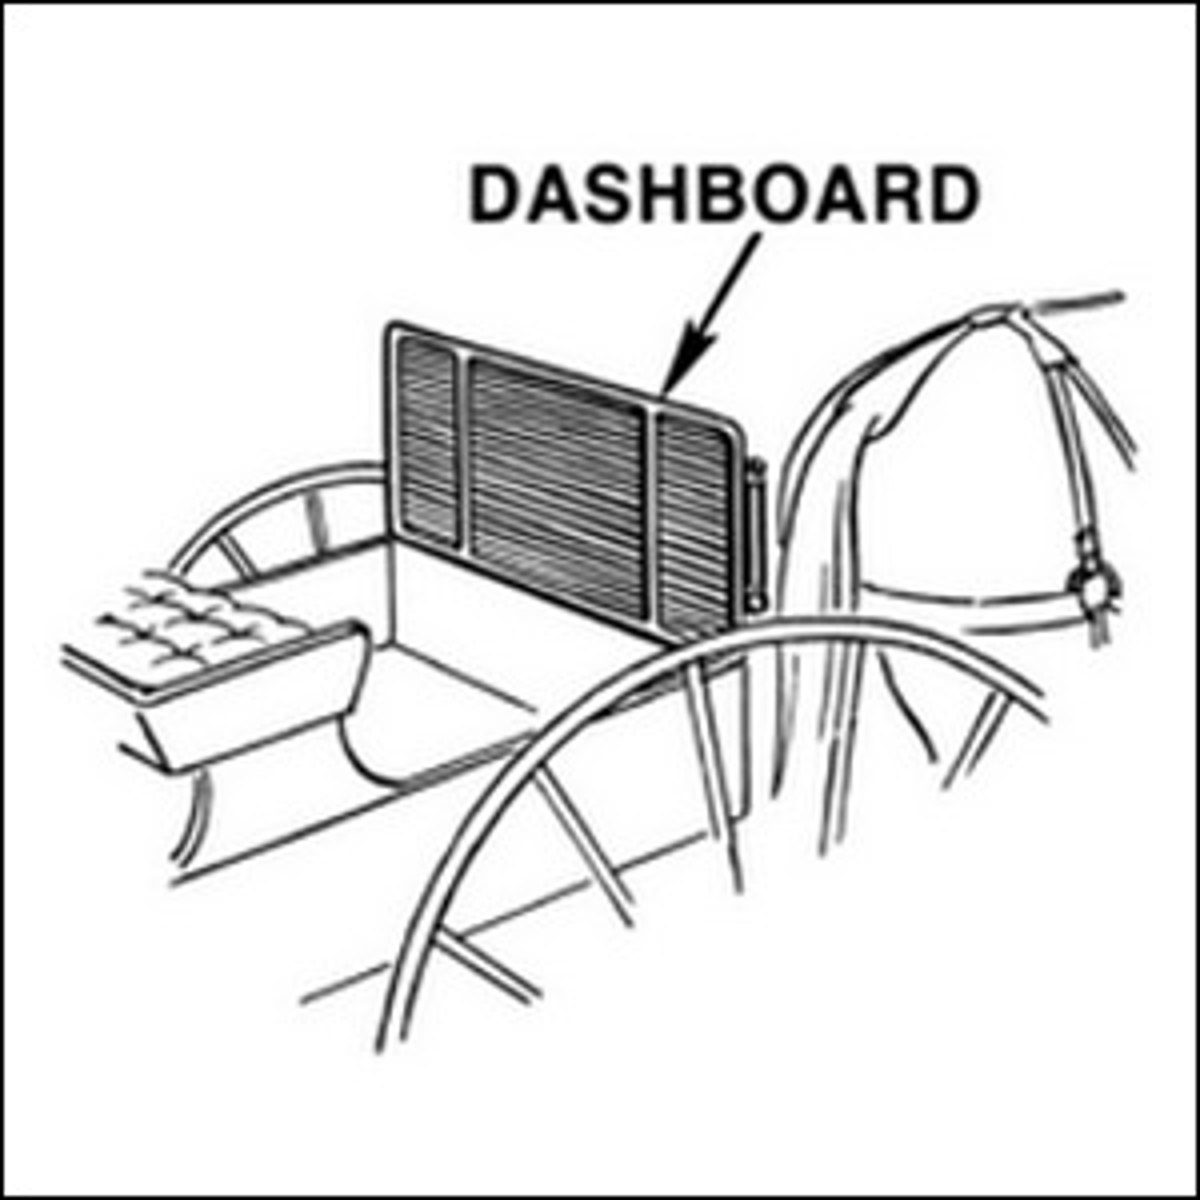 A black and white drawing of a carriage's dashboard.